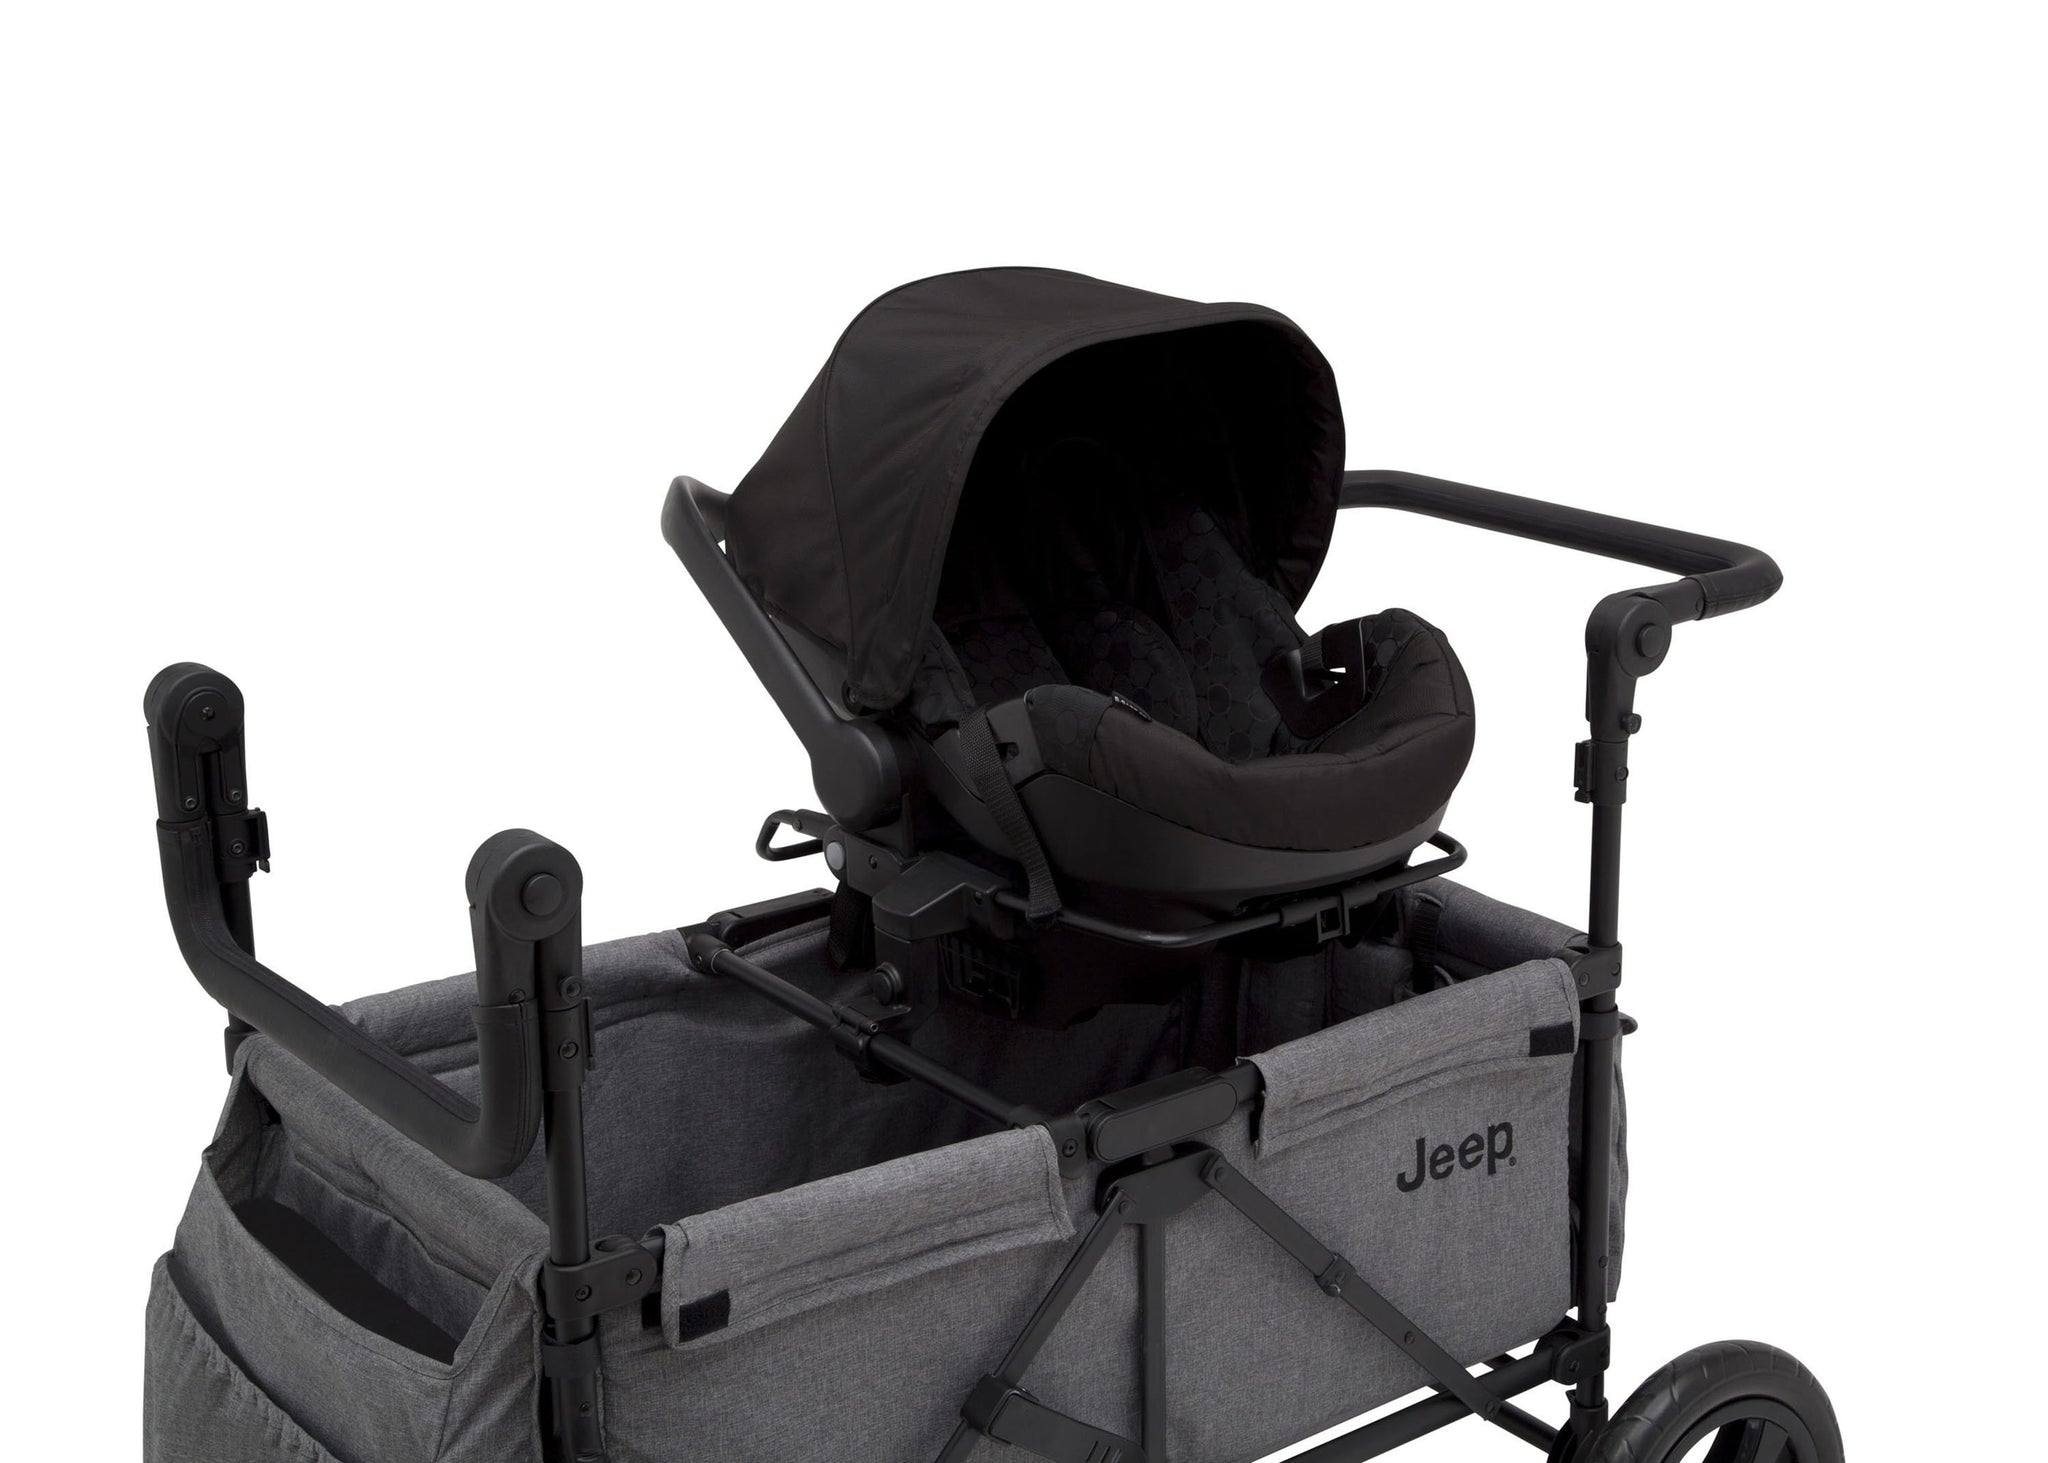 Jeep Wrangler Stroller Wagon by Delta Children, Grey (2148), Included car seat adapter